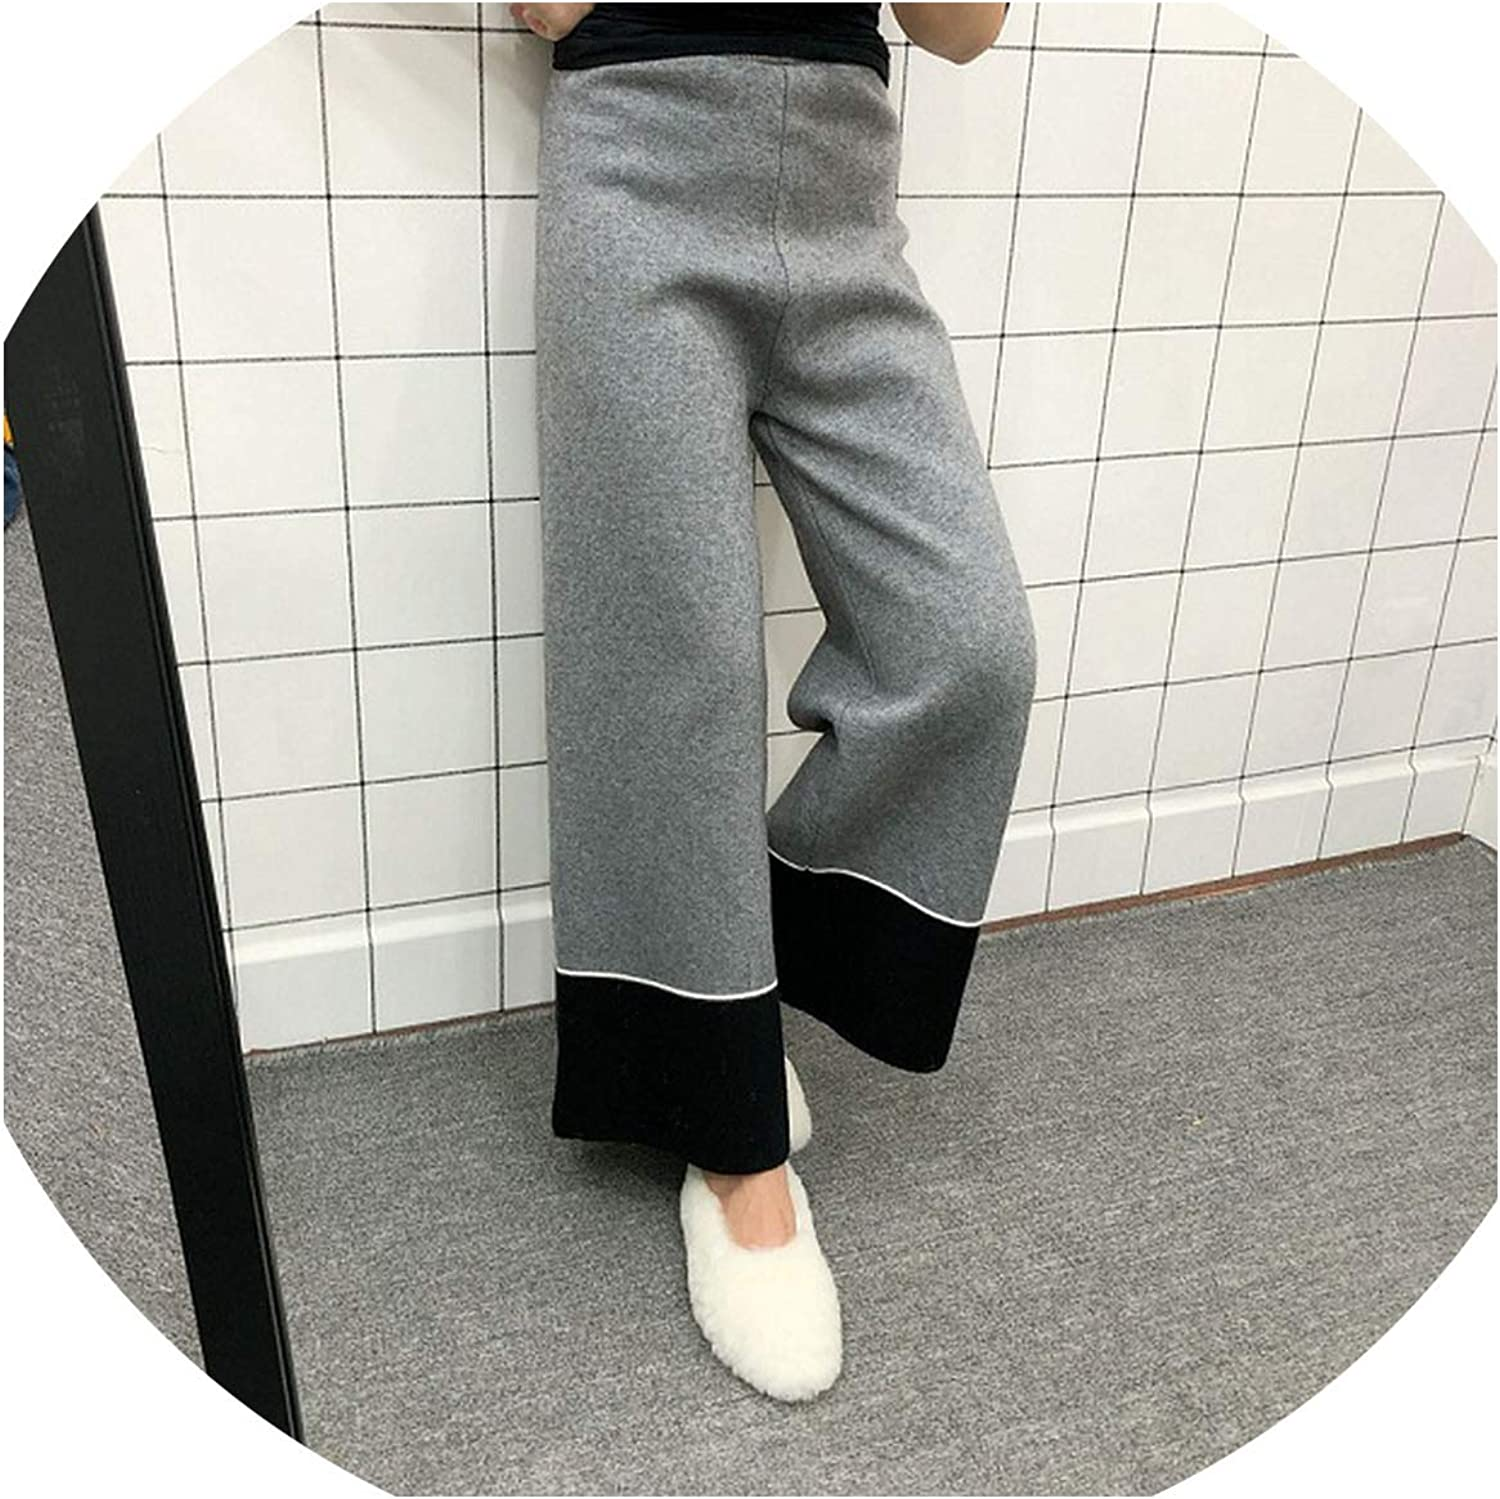 I'll NEVER BE HER 2018 Winter Thick Wide Leg Pants Women Full Length Fashion Elastic Patchwork Loose Casual Trousers Warm